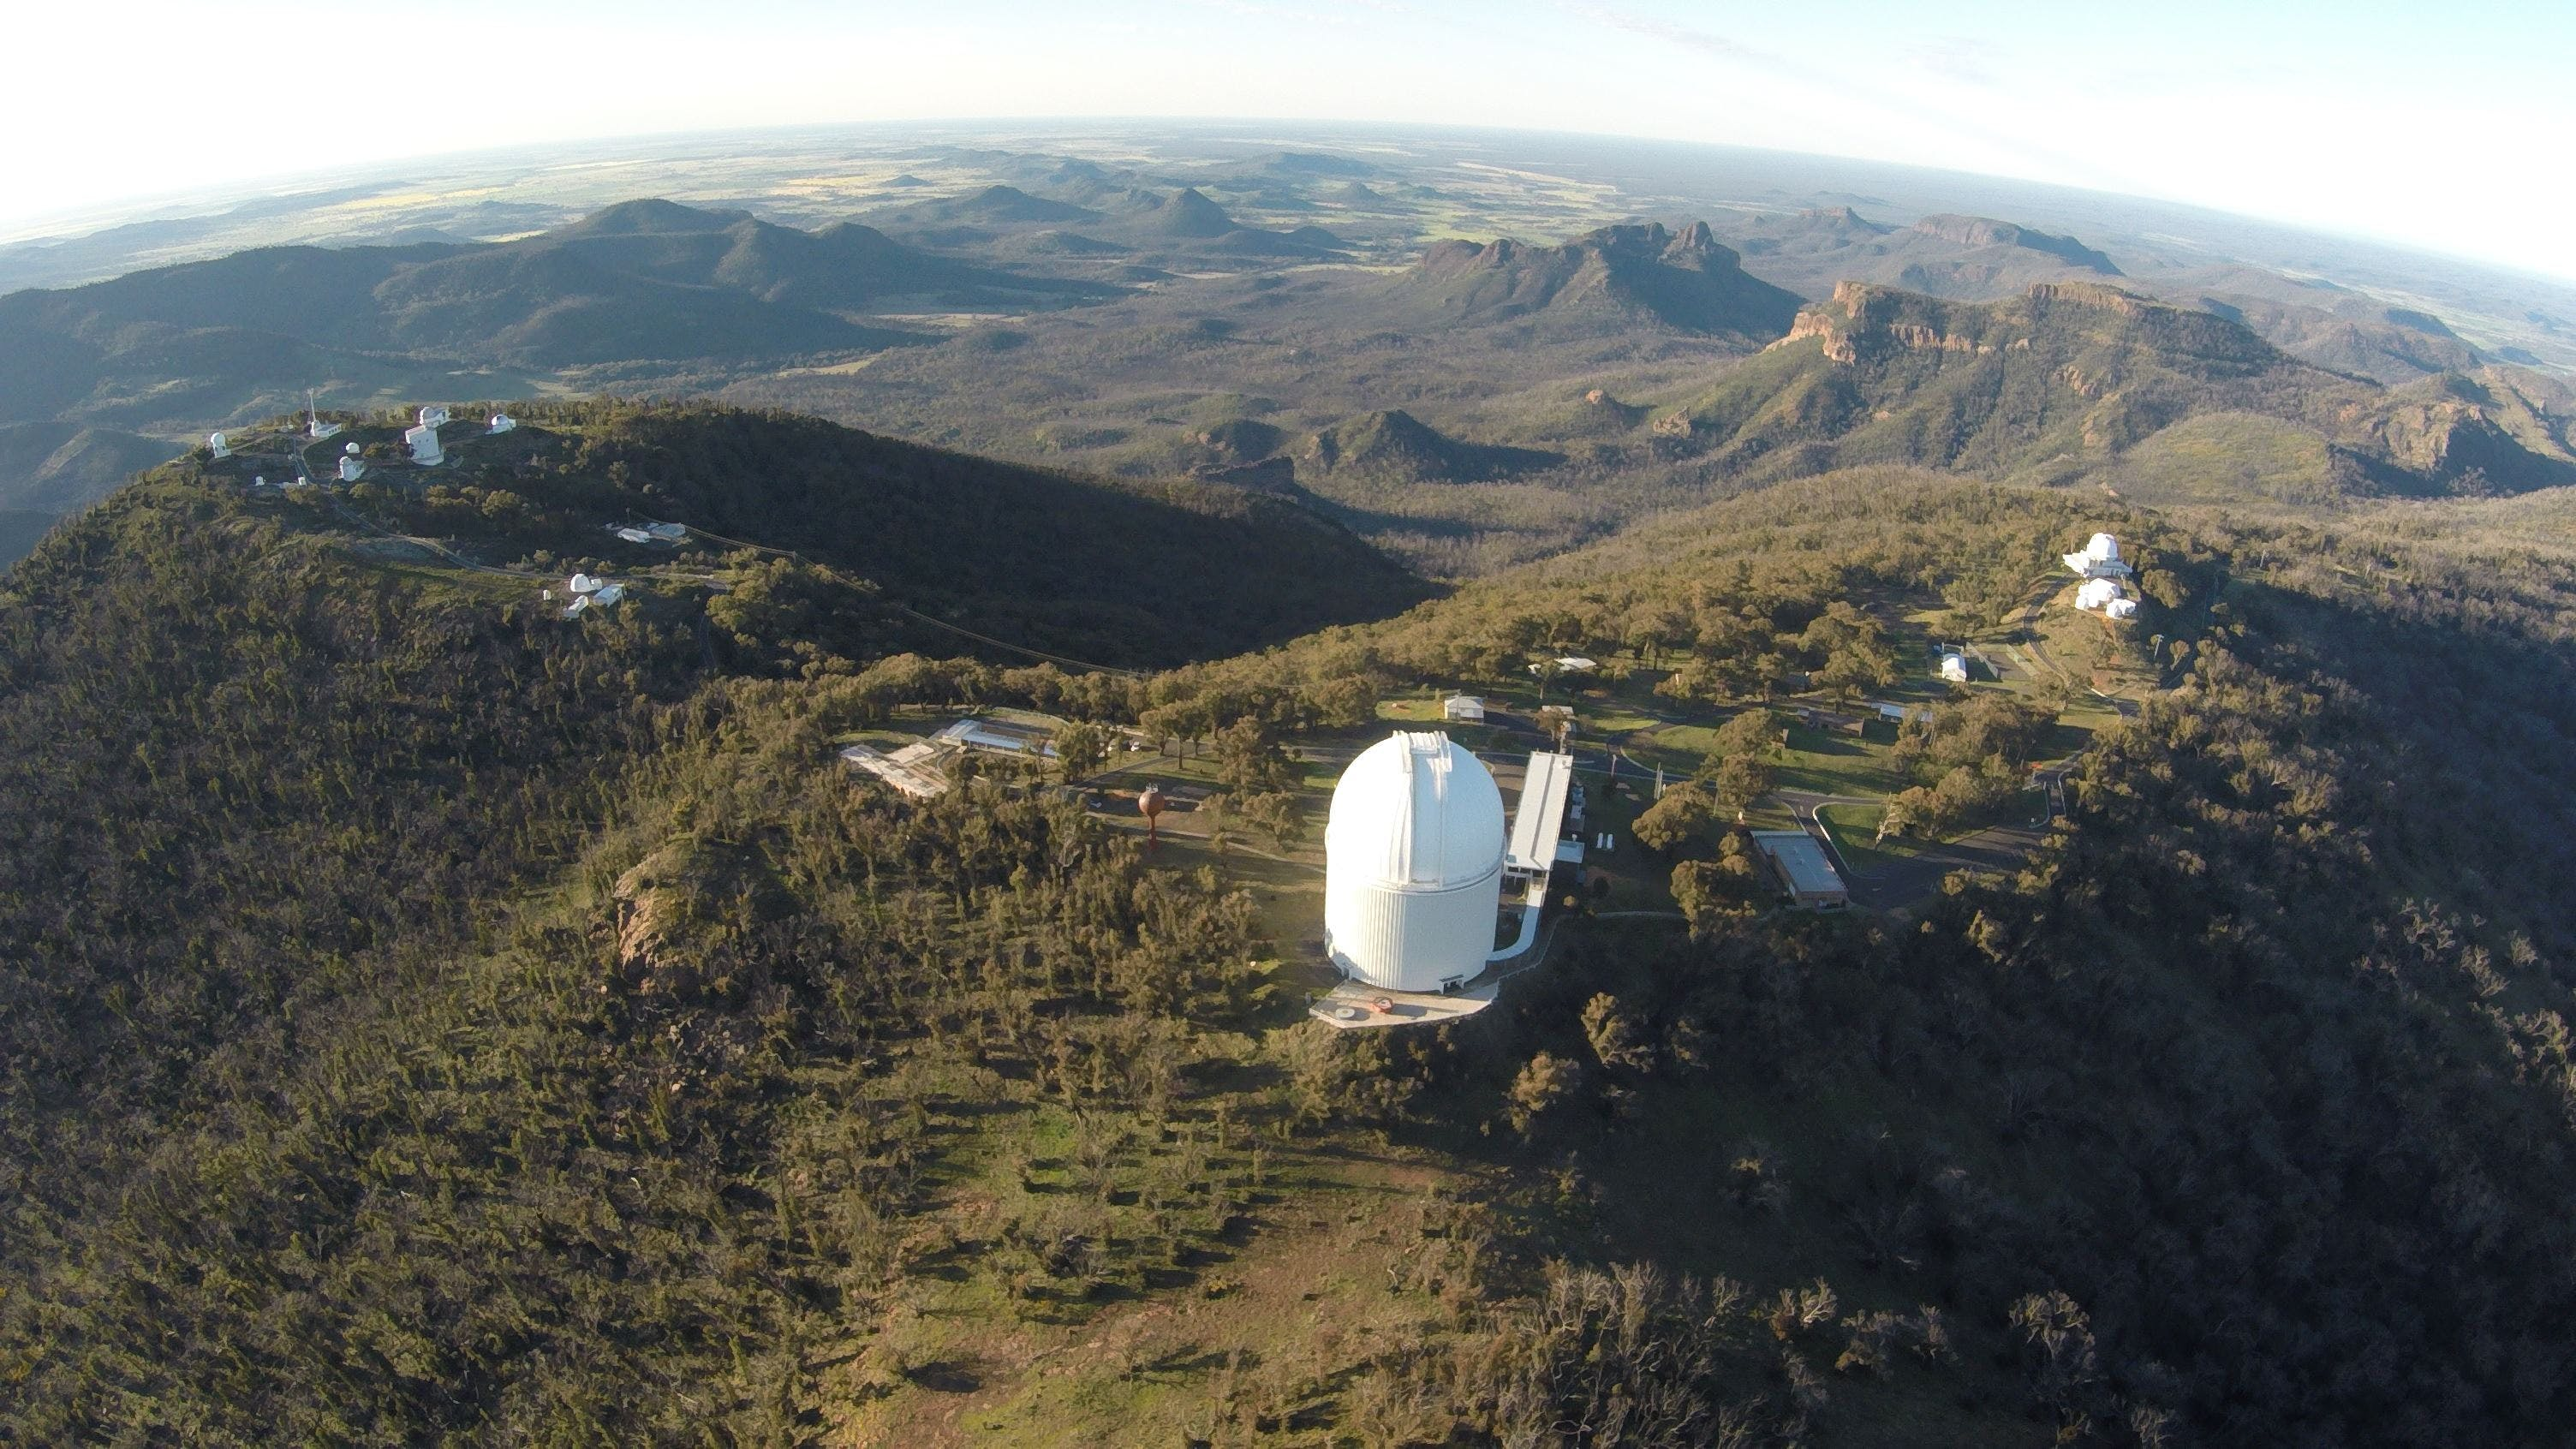 Siding Spring Observatory - Attractions Sydney